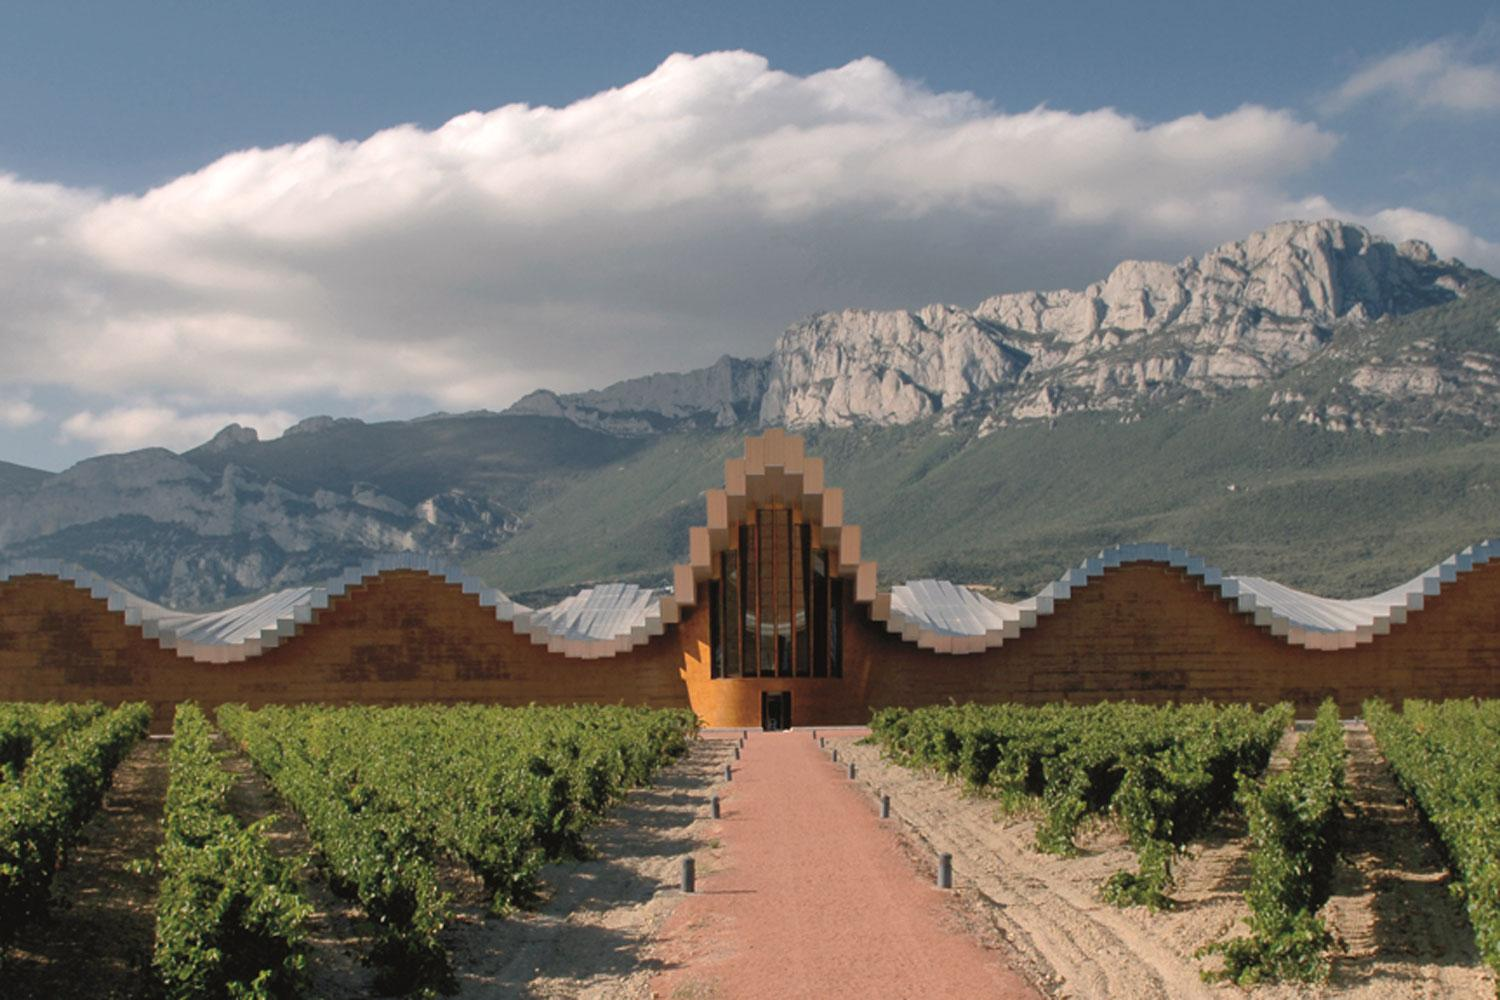 Cycle between architect-designed wineries, such as Ysios in Laguardia